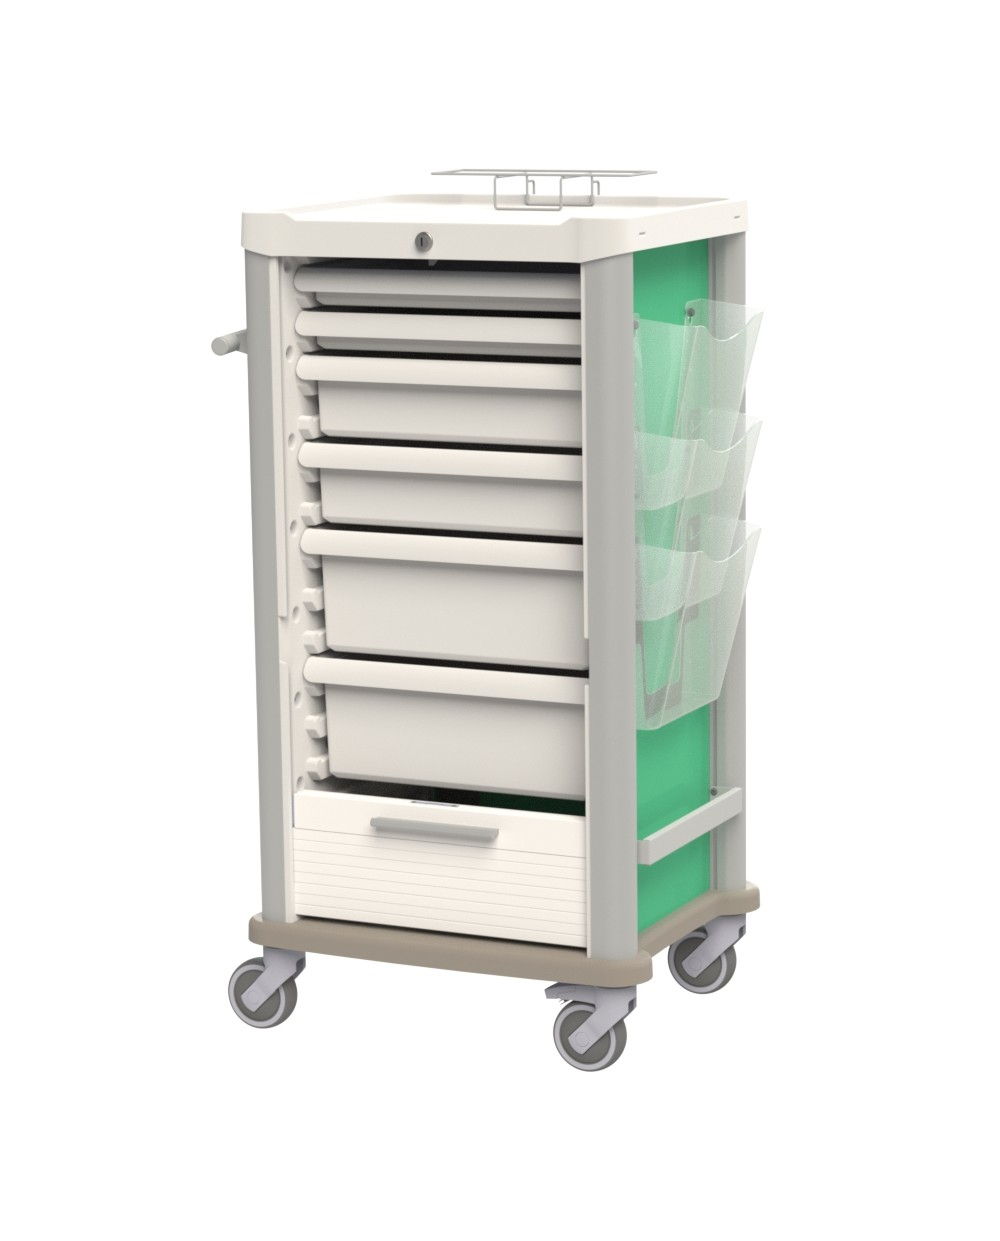 Treatment Cart image